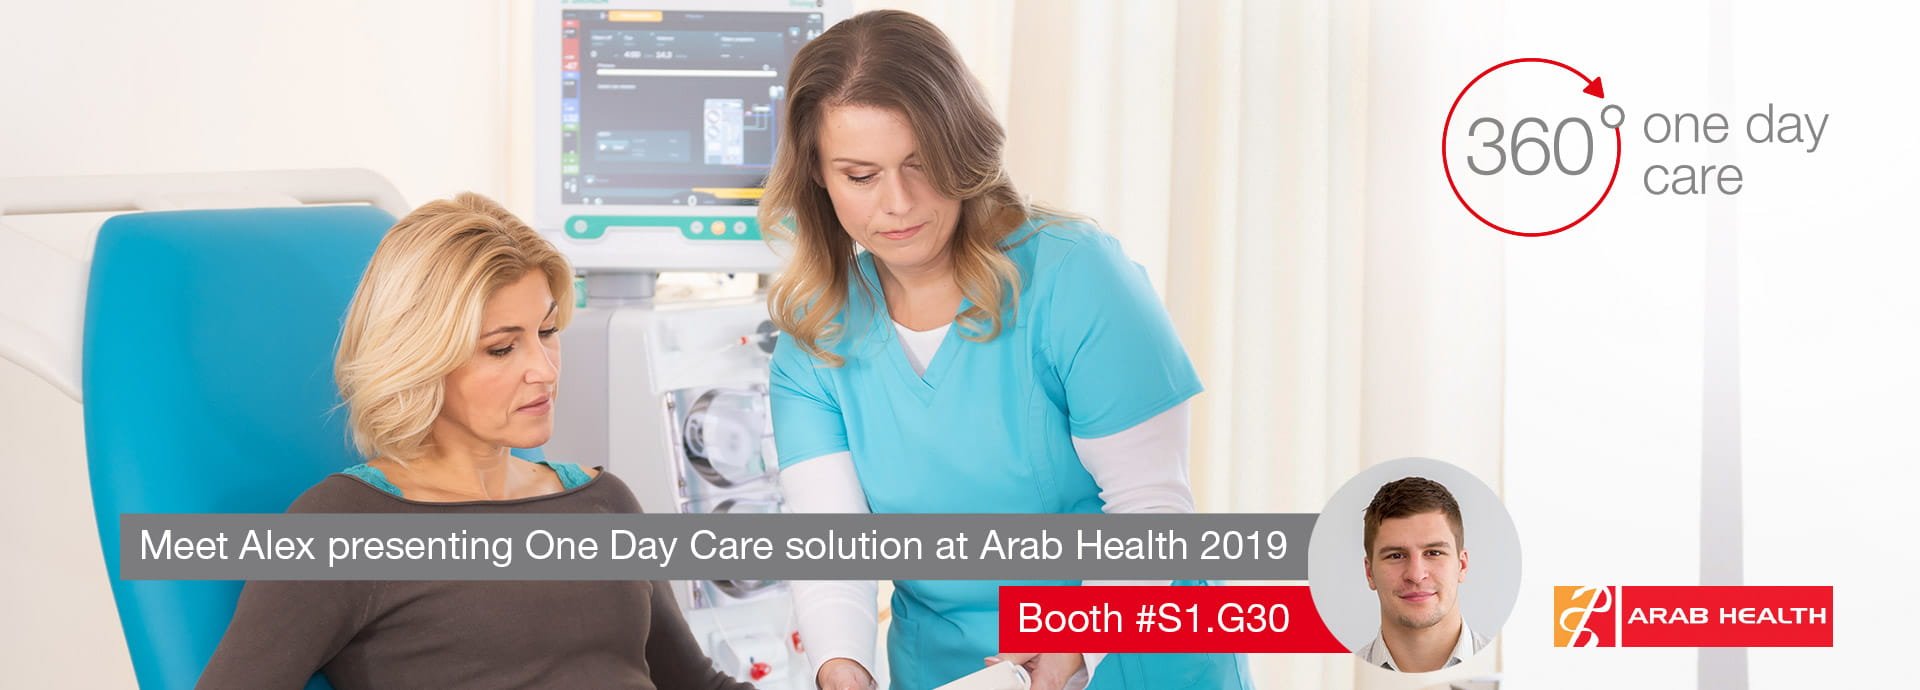 Arab Health 2019 One day care